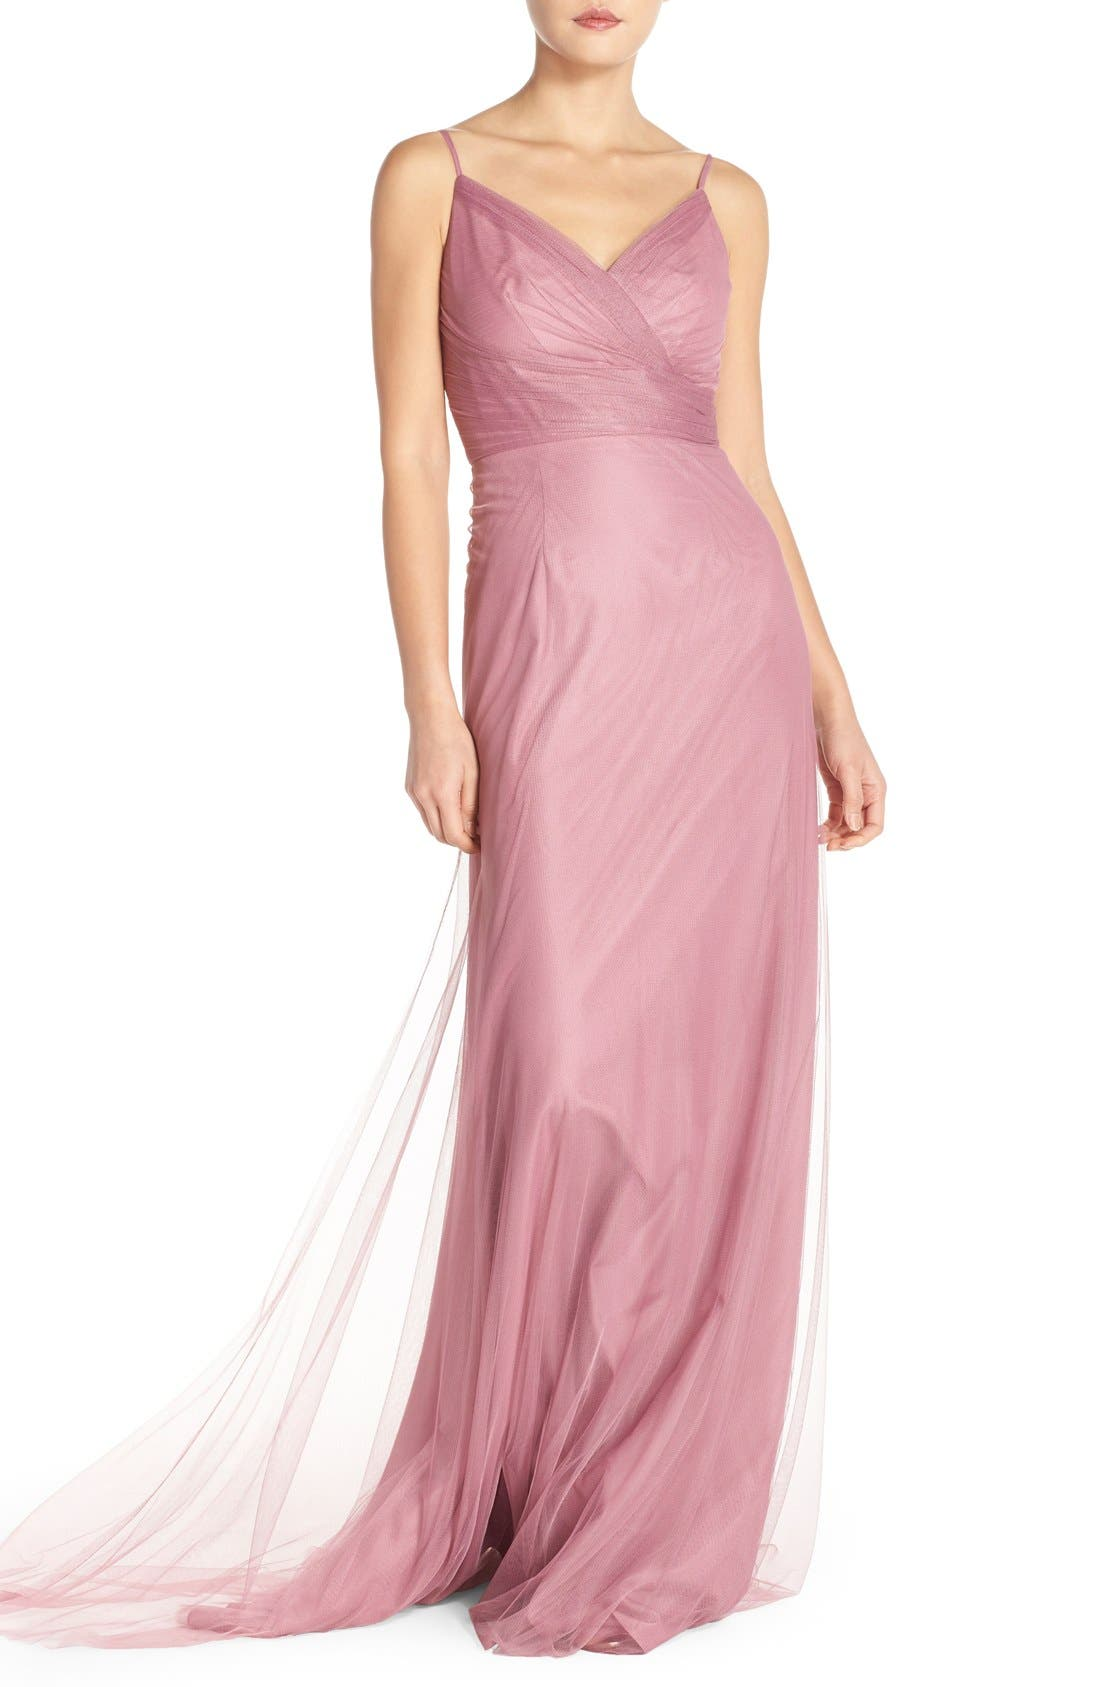 Alternate Image 1 Selected - Monique Lhuillier Bridesmaids Surplice Tulle Gown